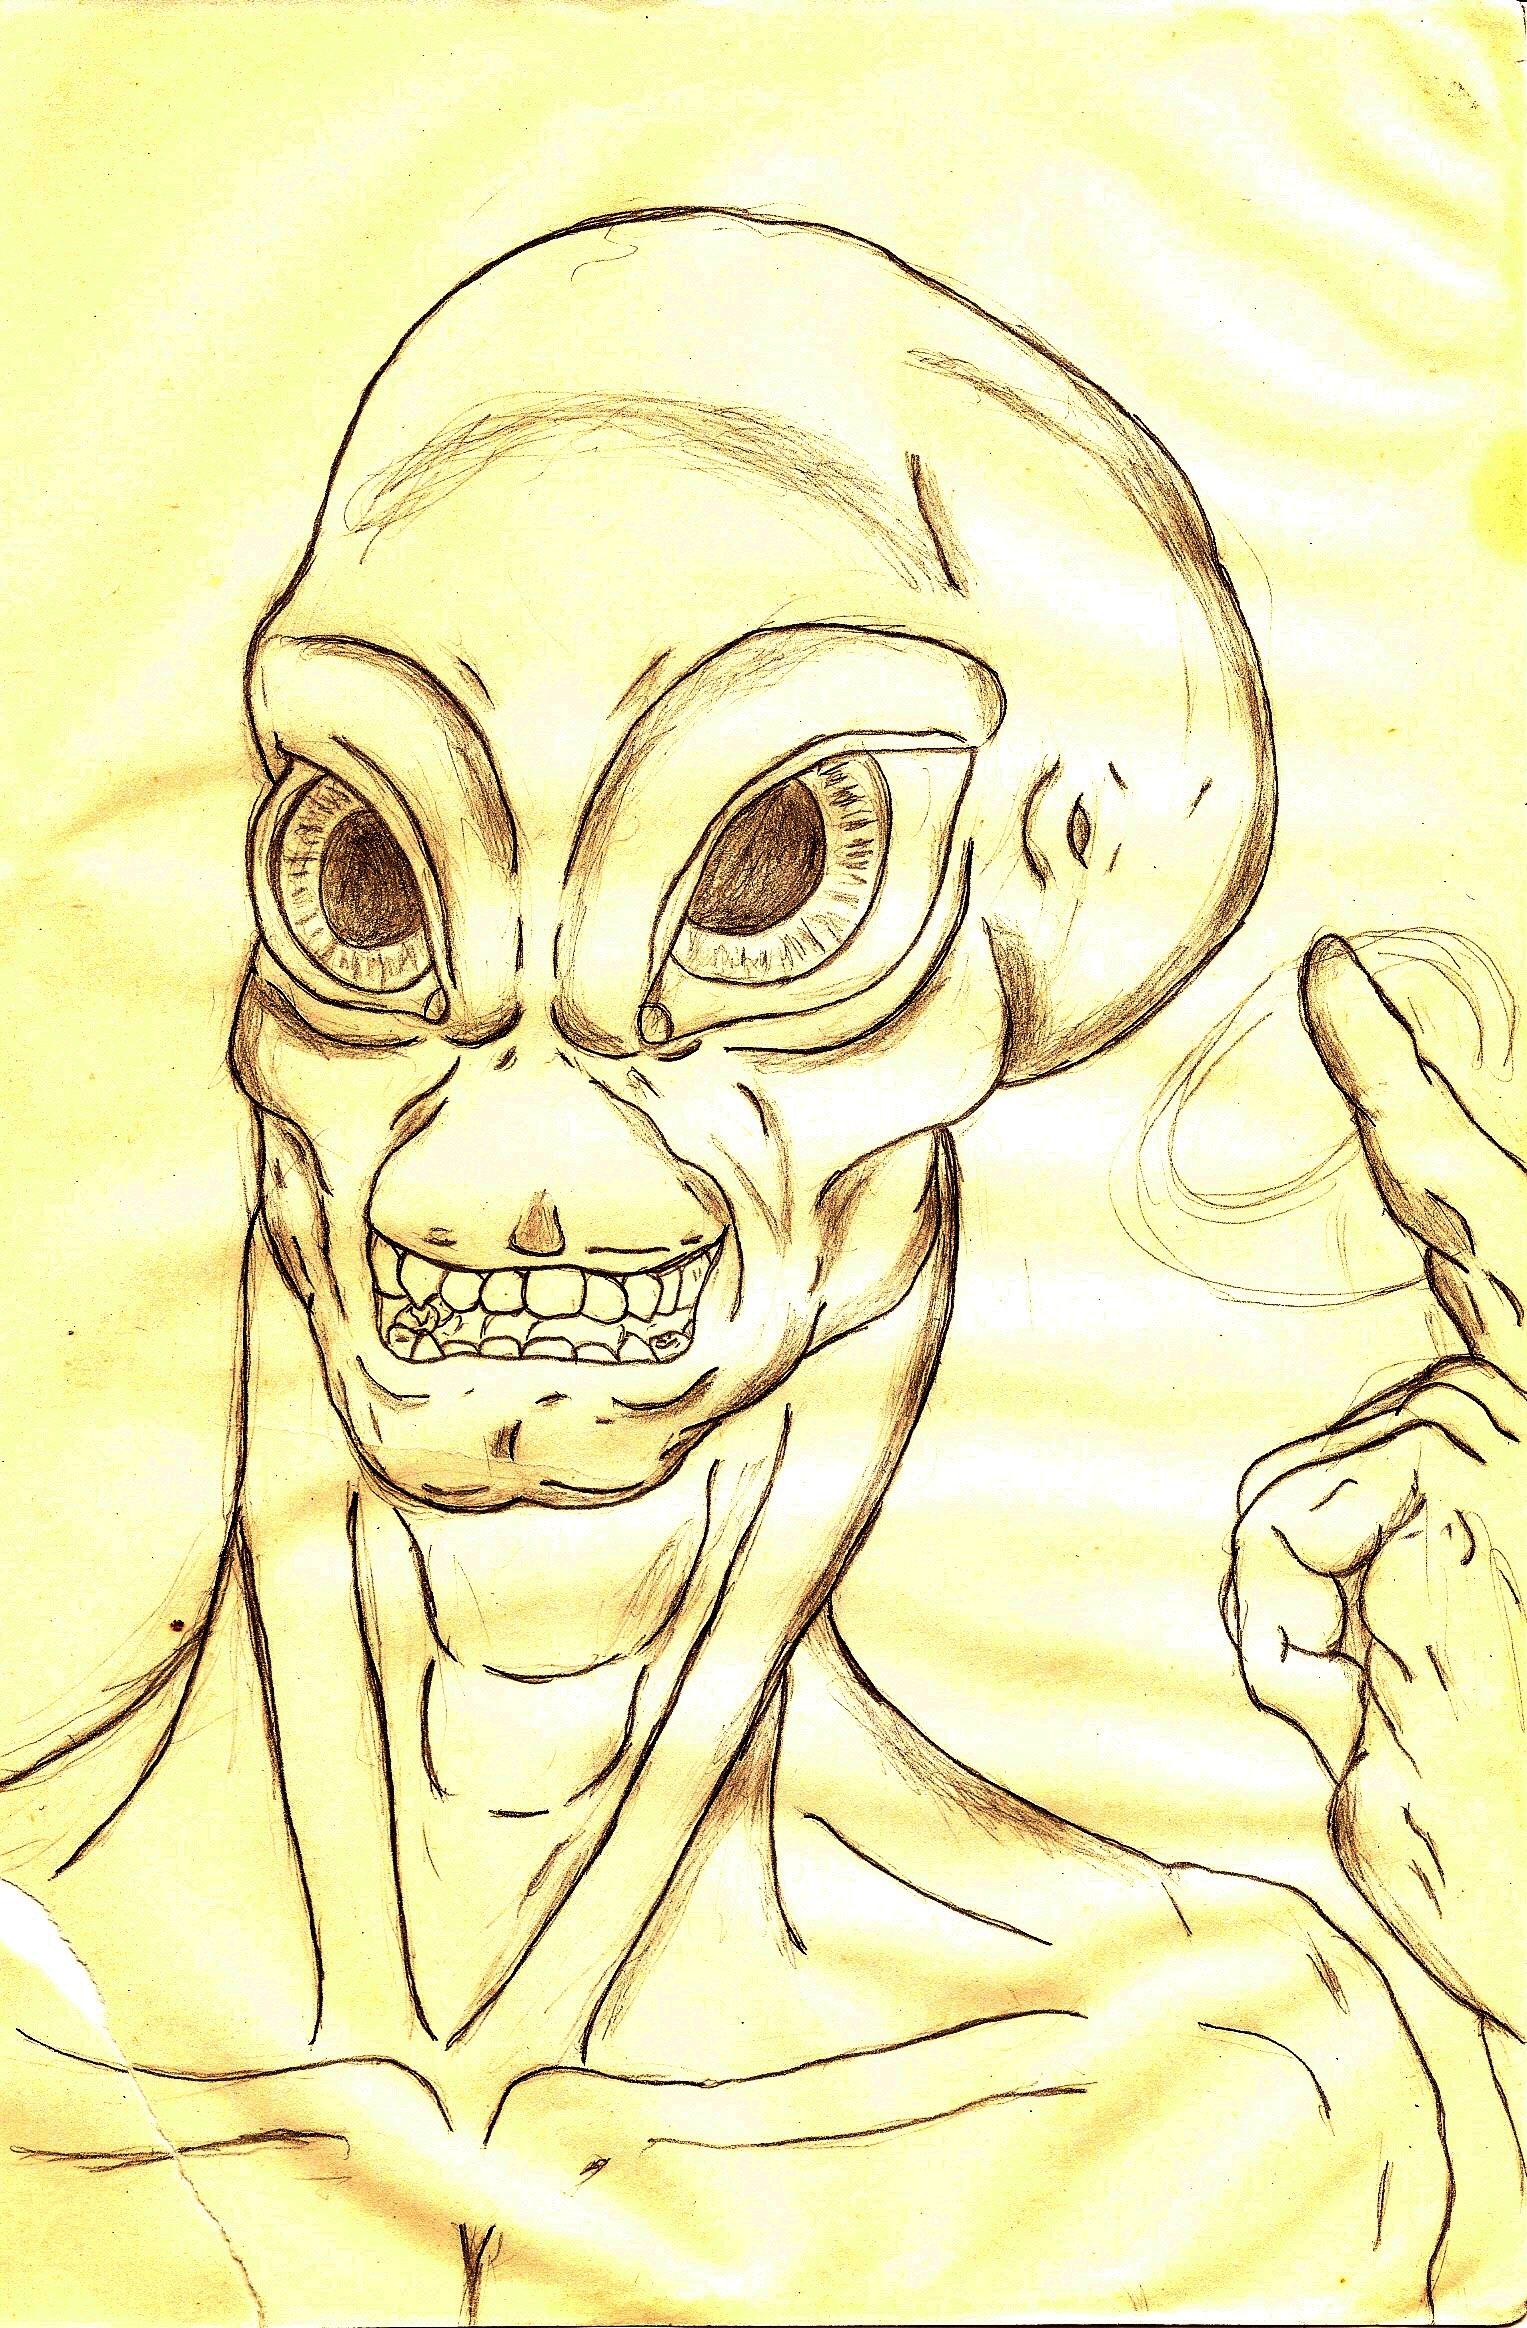 Alien dude musing about probes